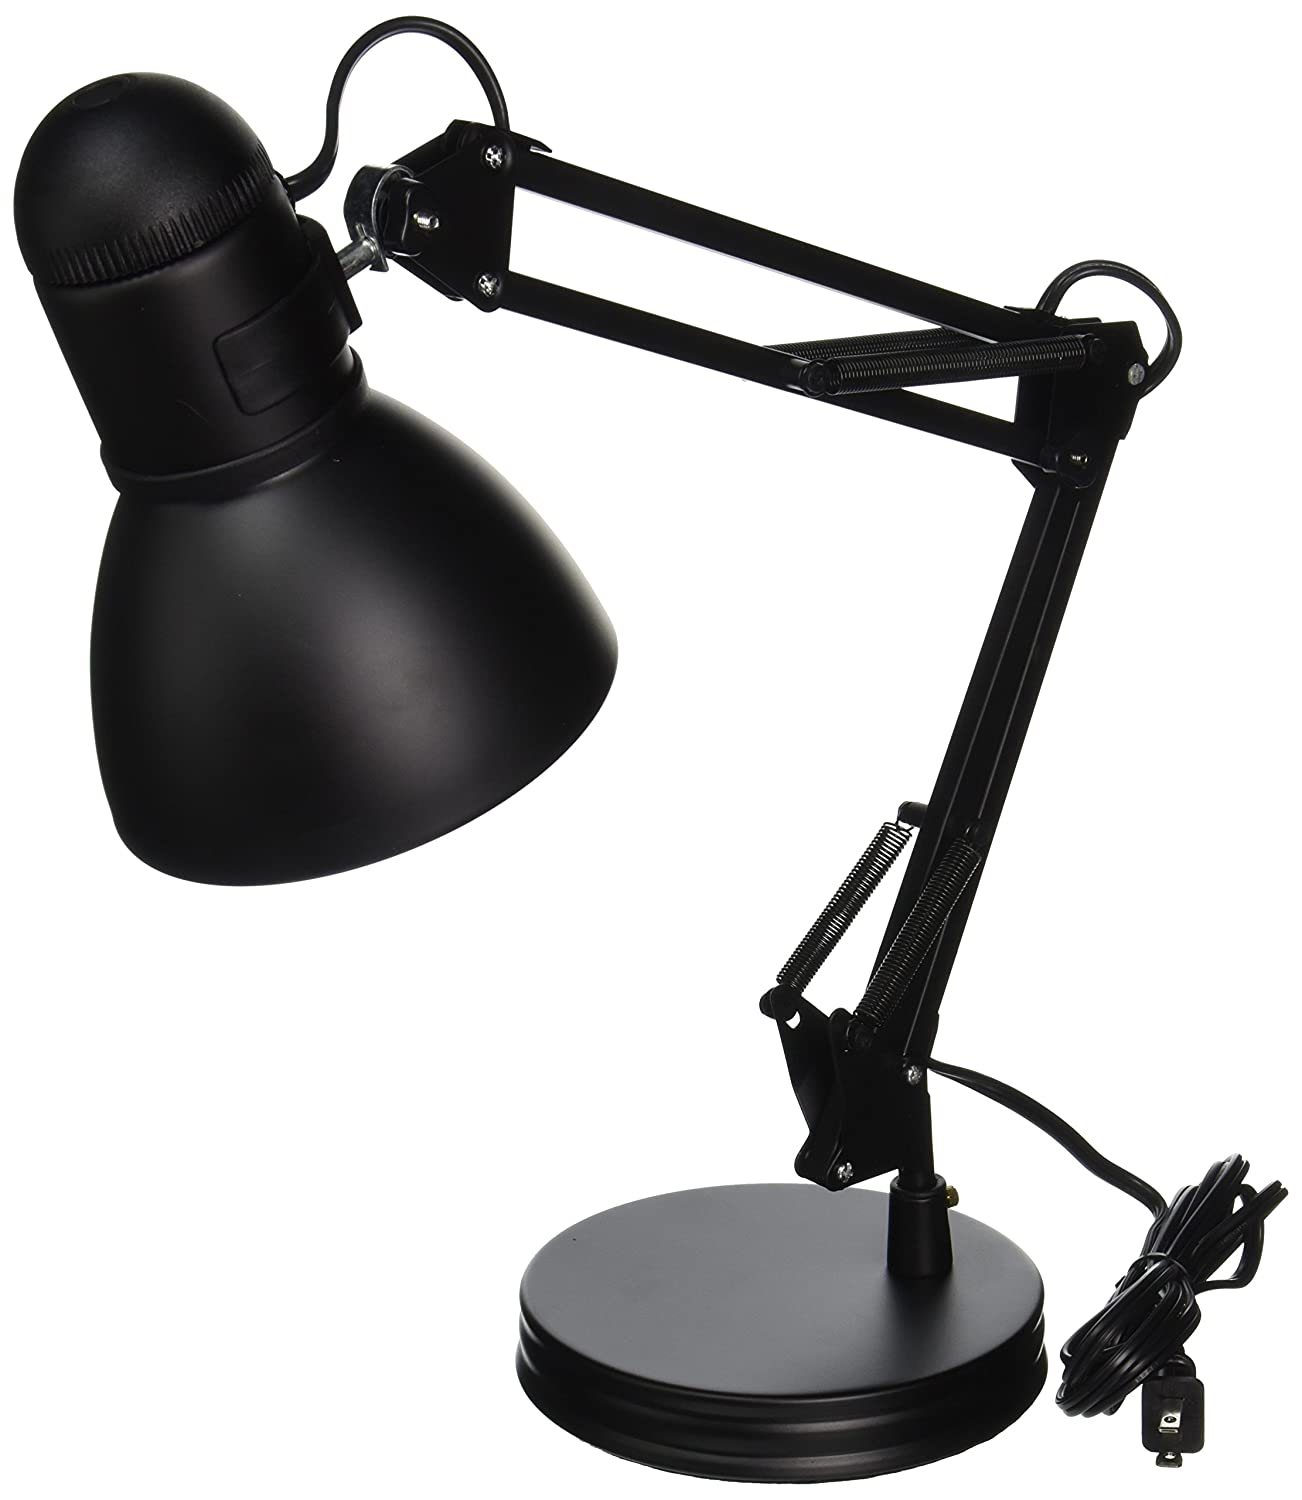 boston harbor architect swing arm desk lamp 26inches black amazoncom